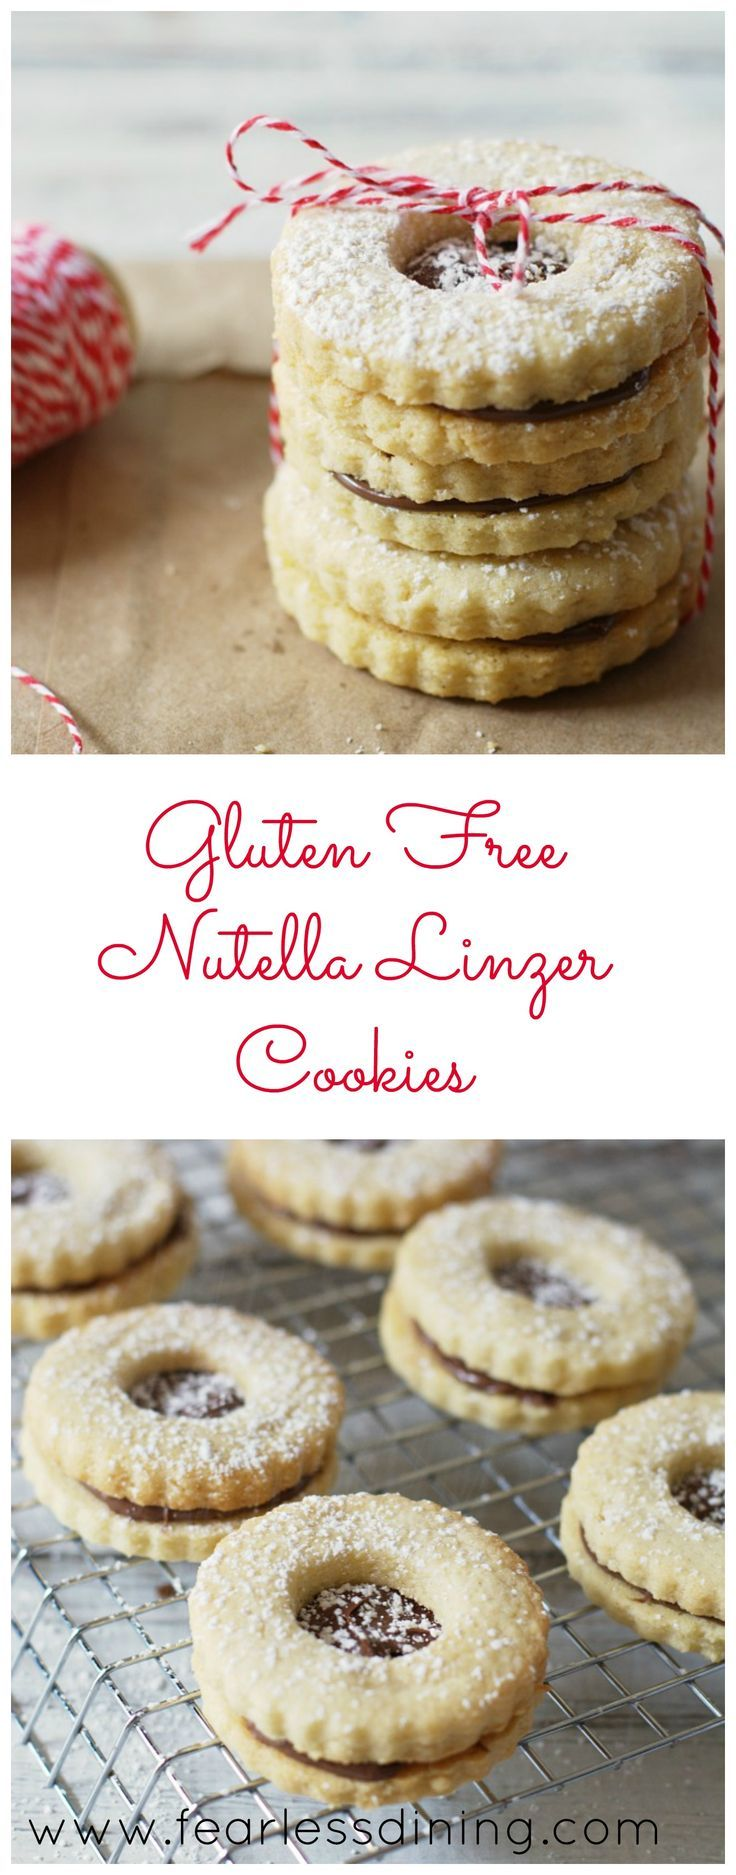 Gluten Free Nutella Linzer Cookies are my favorite way to use Nutella. Found at http://www.fearlessdining.com